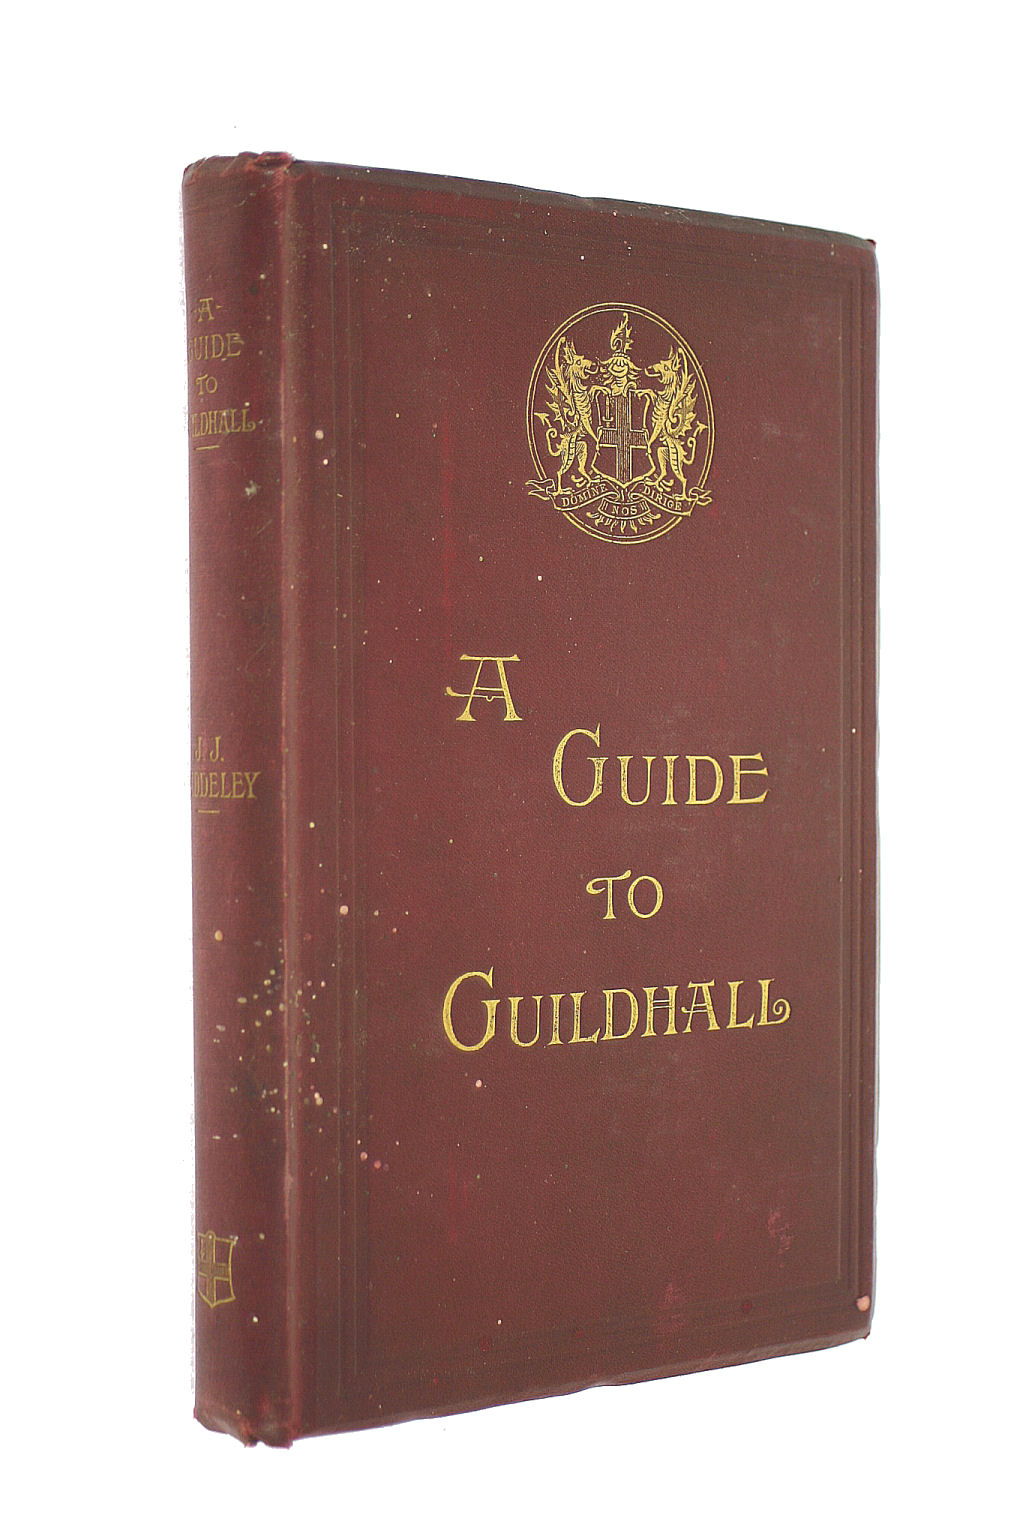 Image for A Guide To The Guildhall Of The City Of London, Together With A Short Account Of Its Historic Associations, And The Municipal Work Carried On Therein